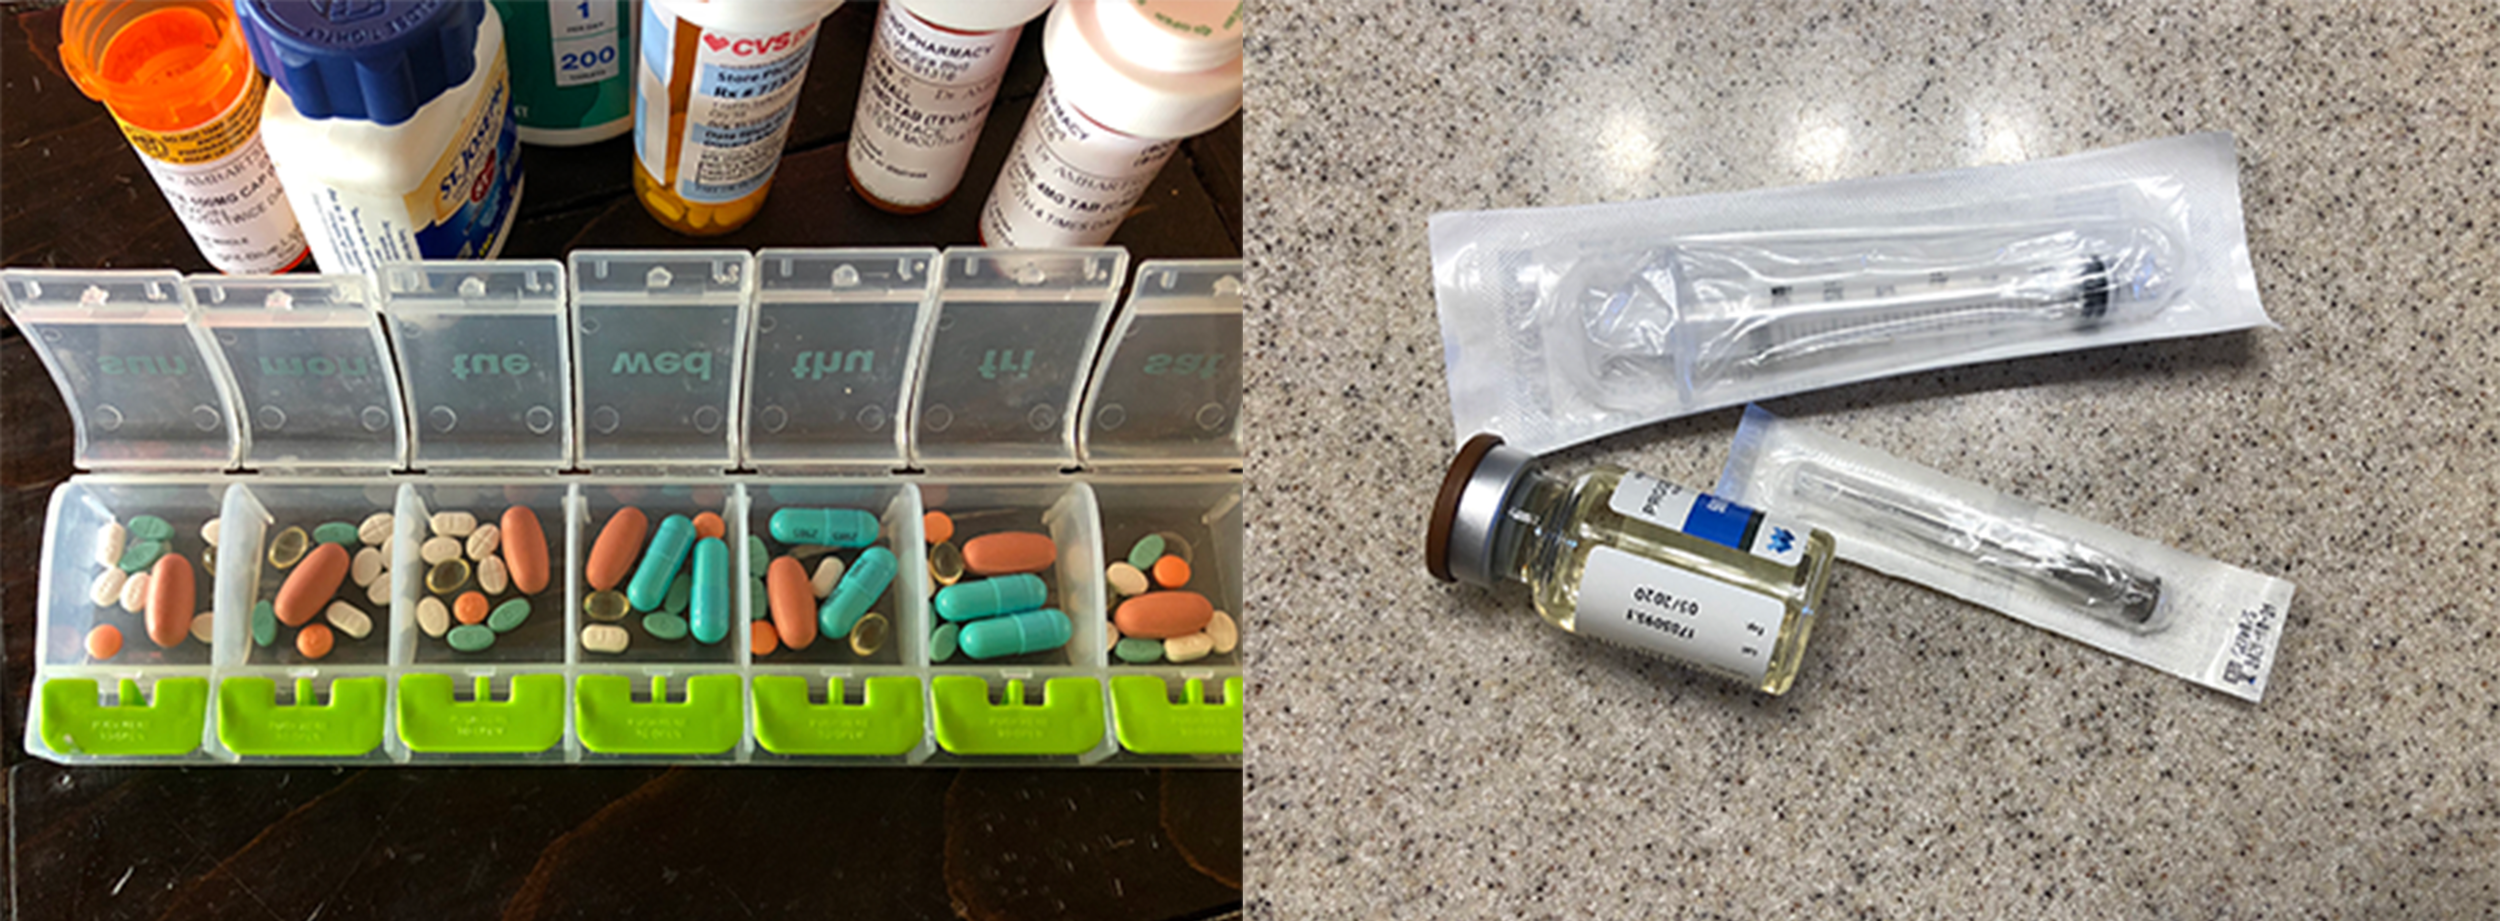 meds photo.png